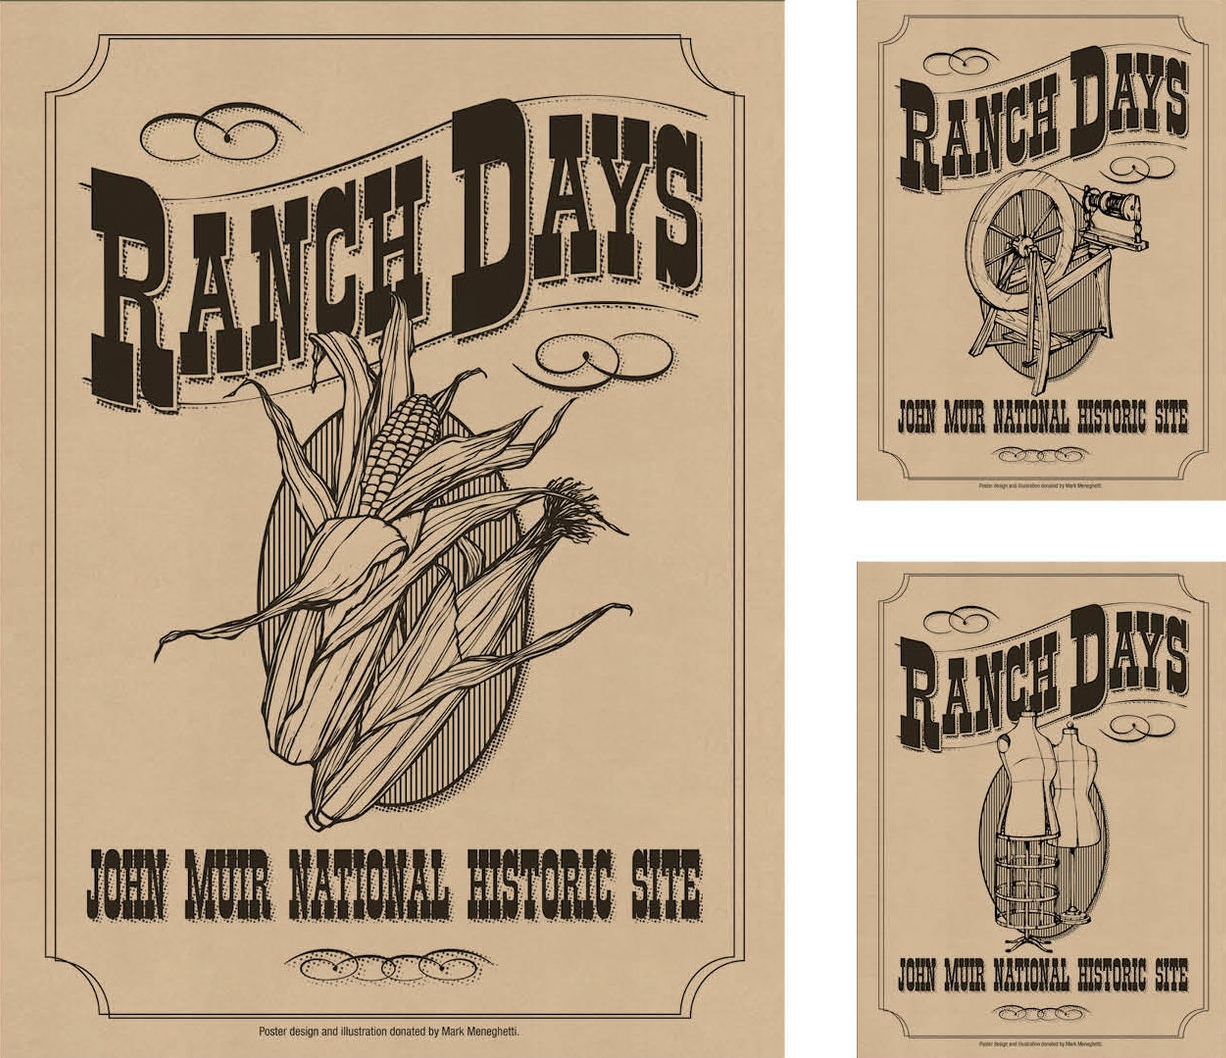 JOHN MUIR HOUSE RANCH DAYS - The John Muir House held a yearly Ranch Days celebration highlighting daily activities on the ranch. Posters digitally printed on Kraft paper.Responsible for concept, design and illustrations.